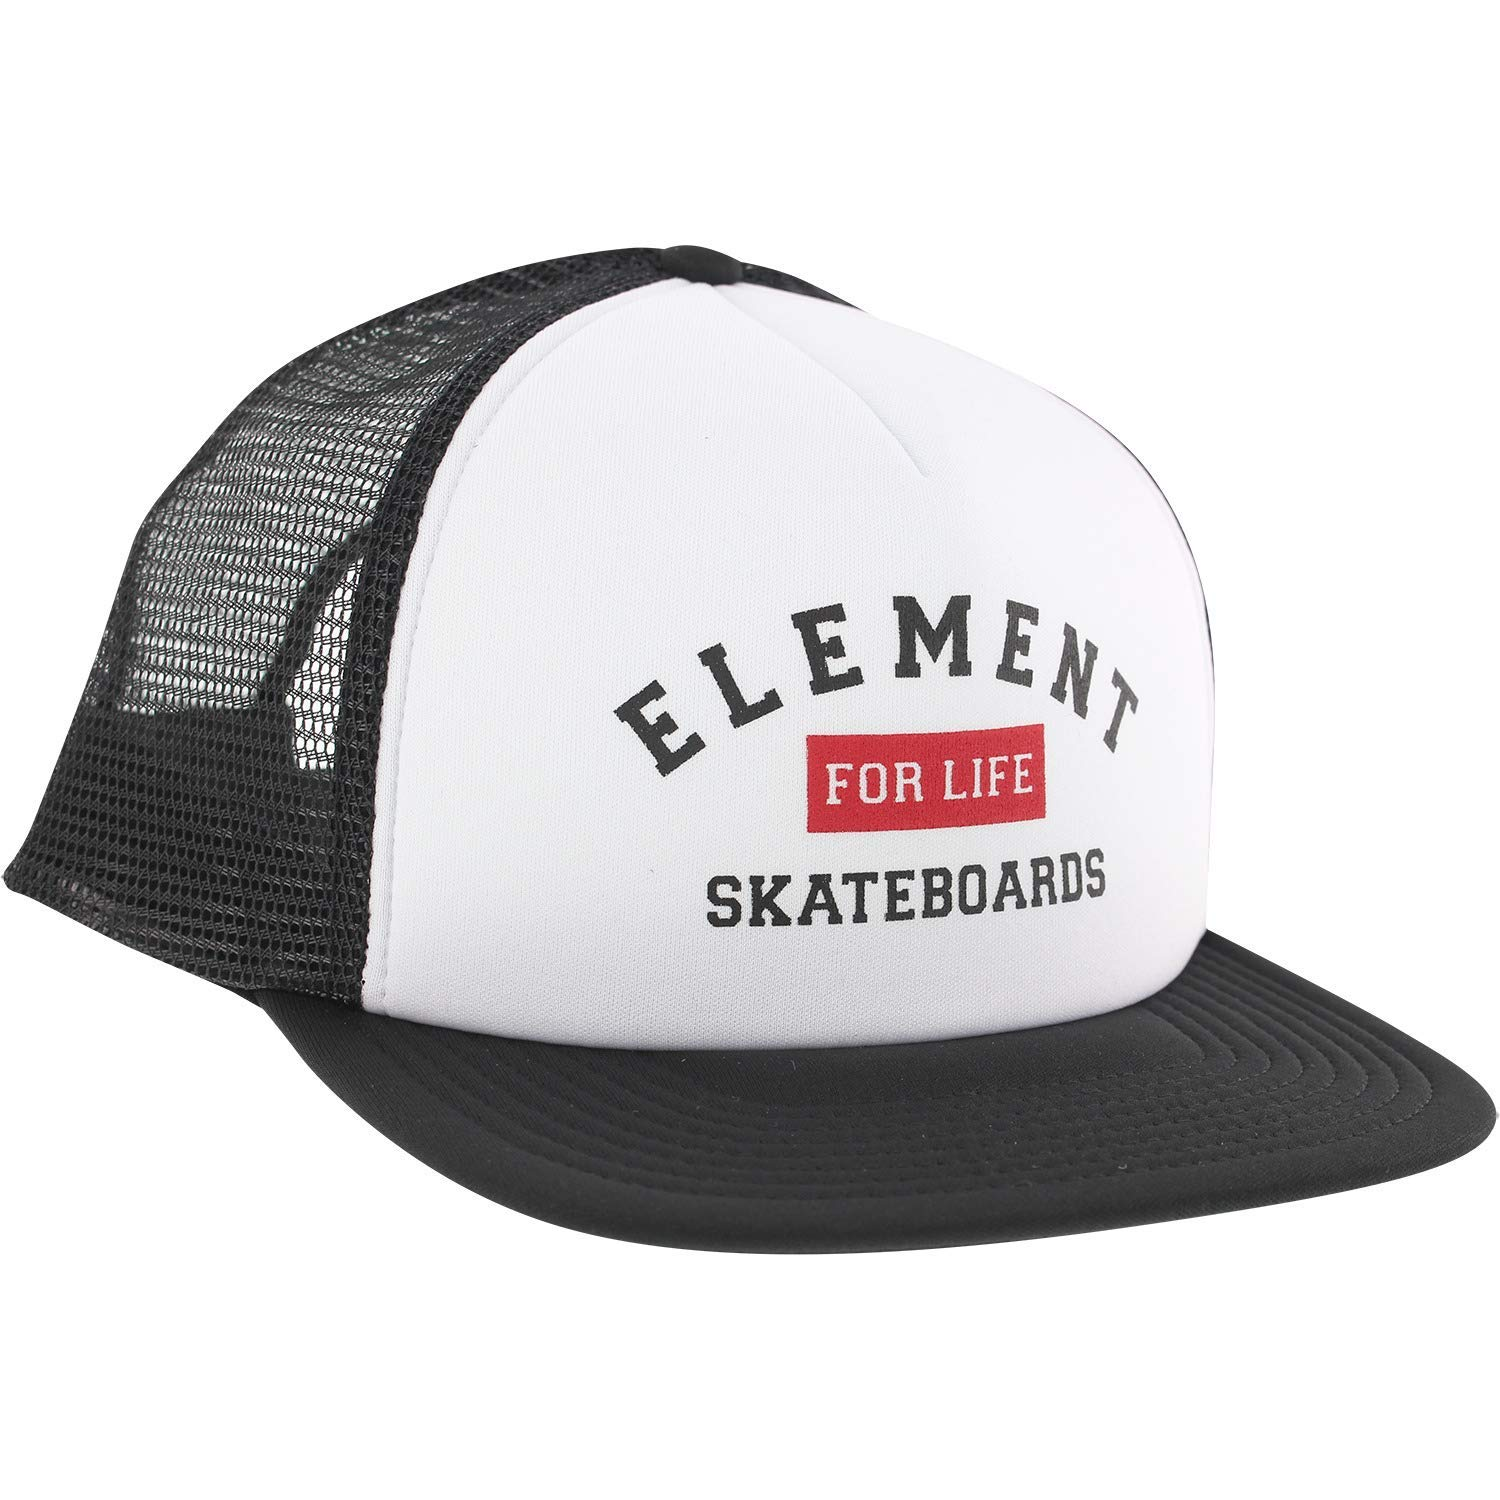 19d22af031a Get Quotations · Element Skateboards Rift White Black Mesh Trucker Hat -  Adjustable